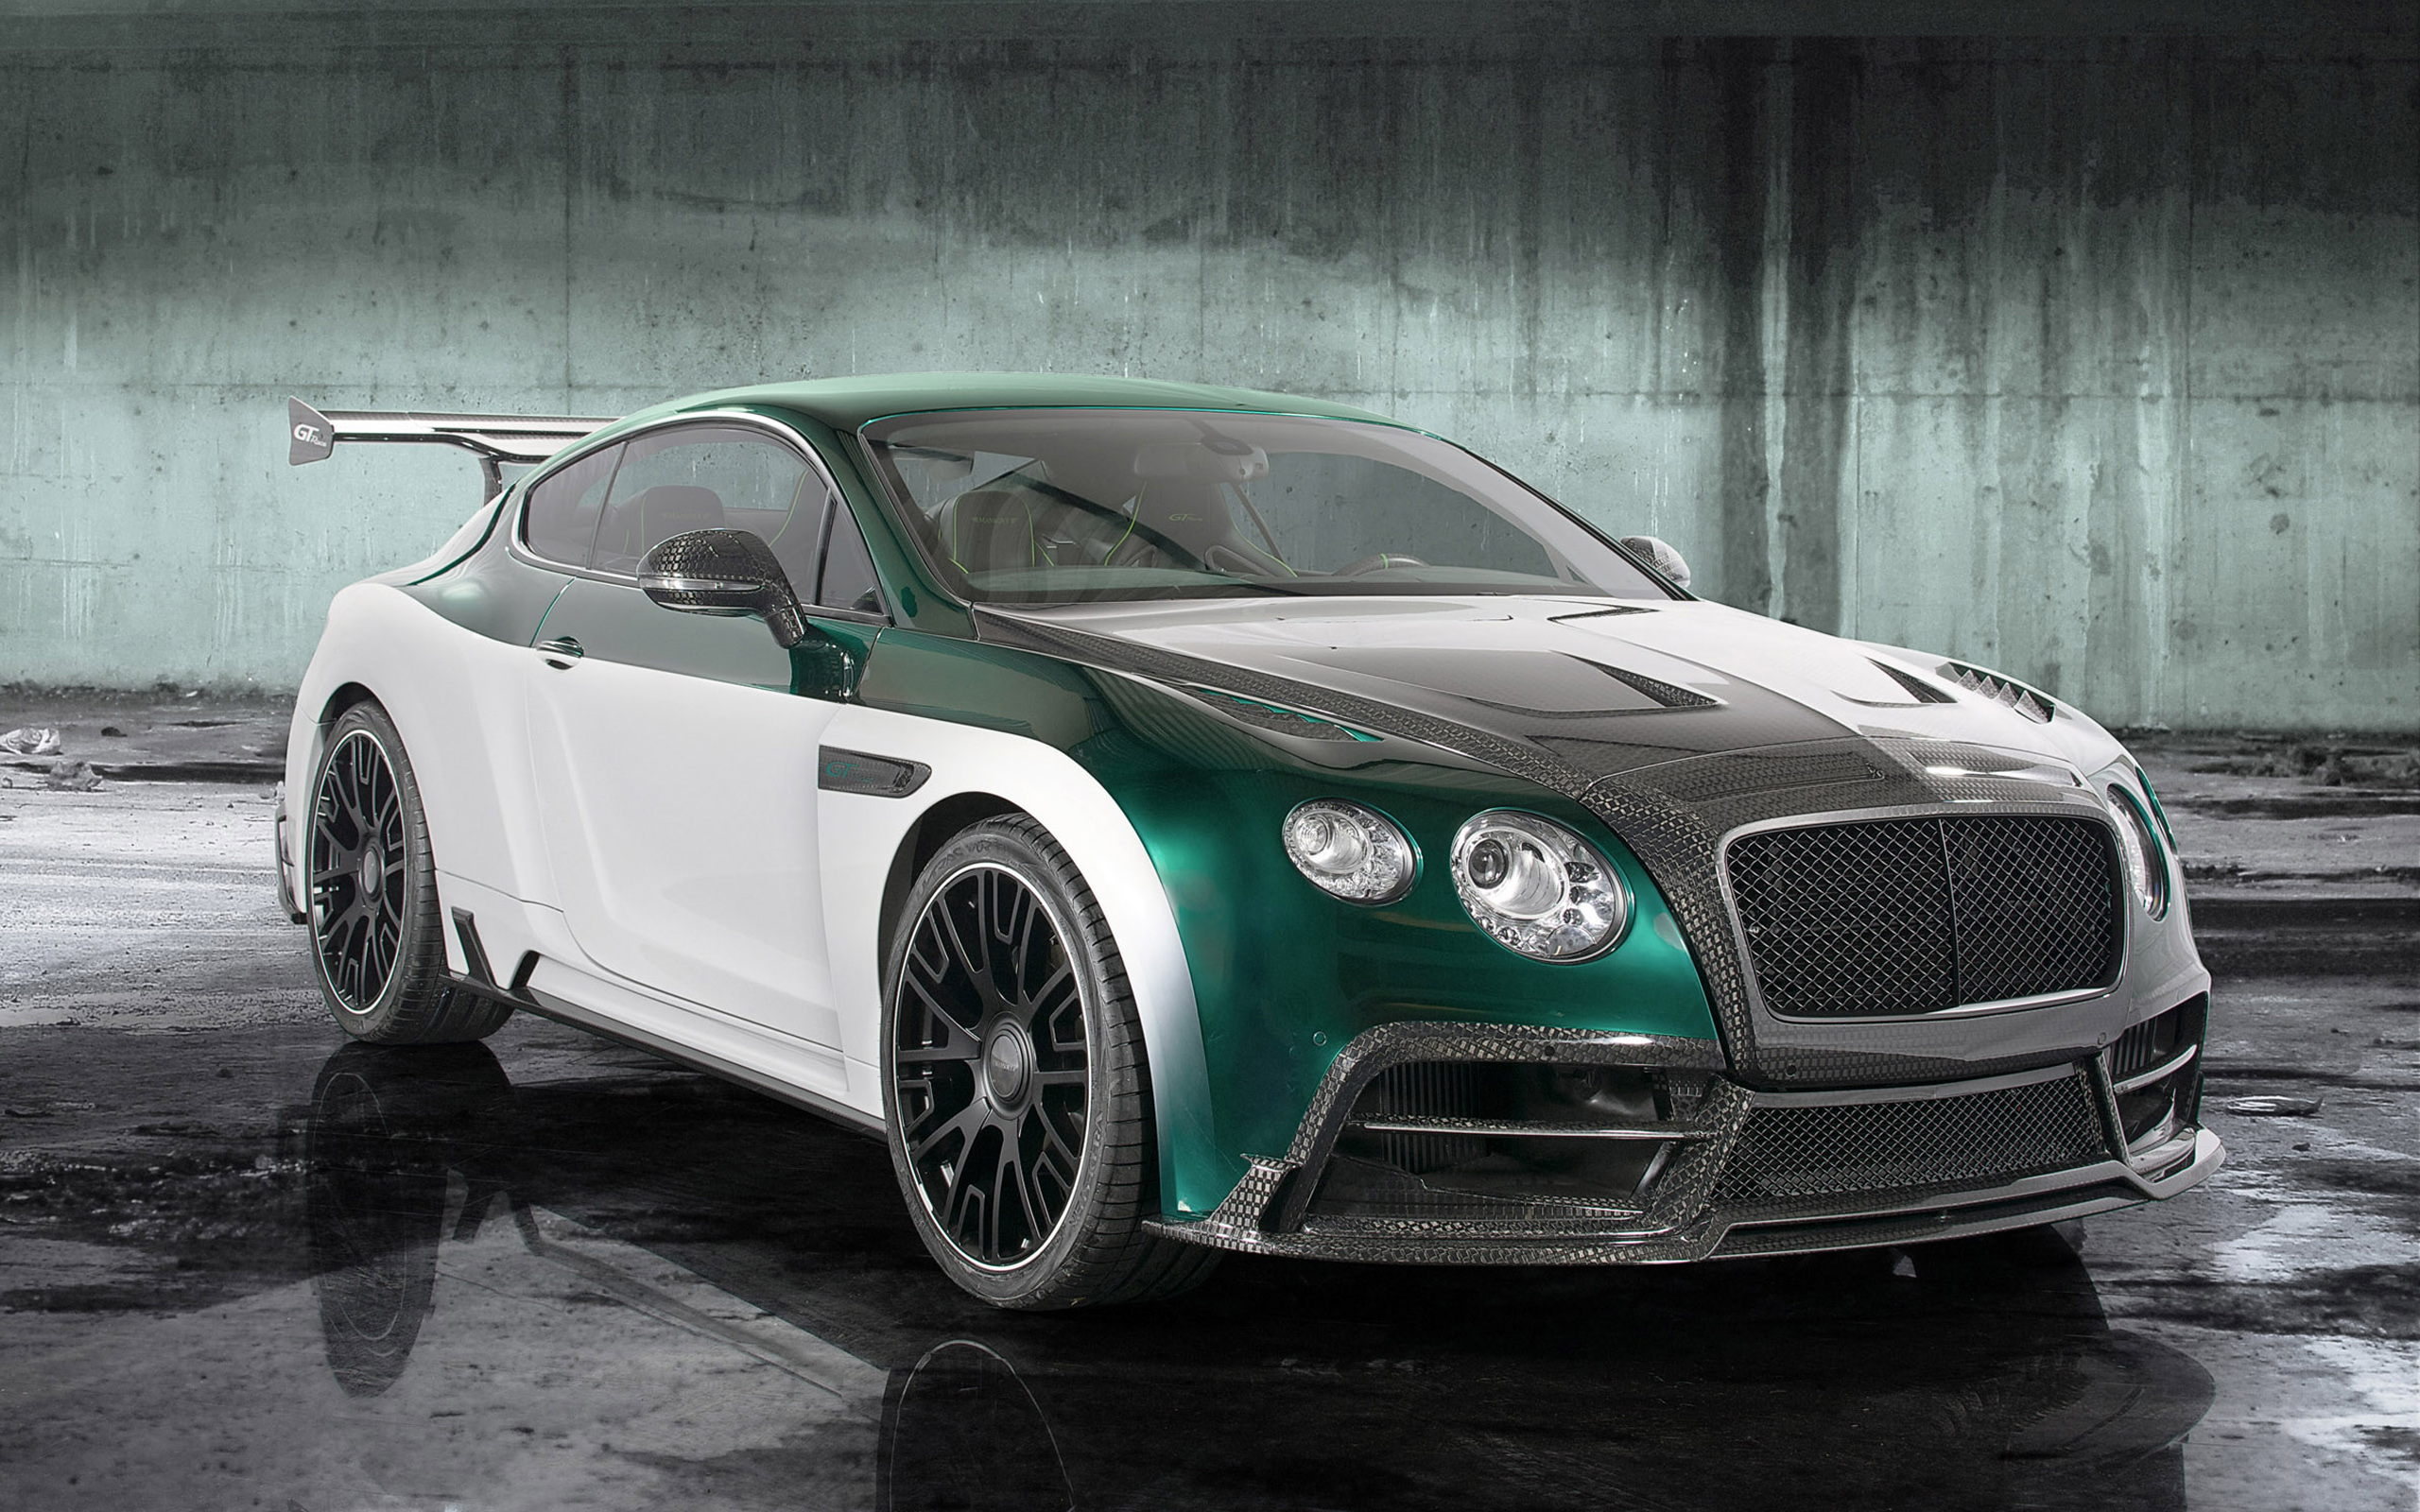 2015 Mansory Bentley Continental GT Wallpaper